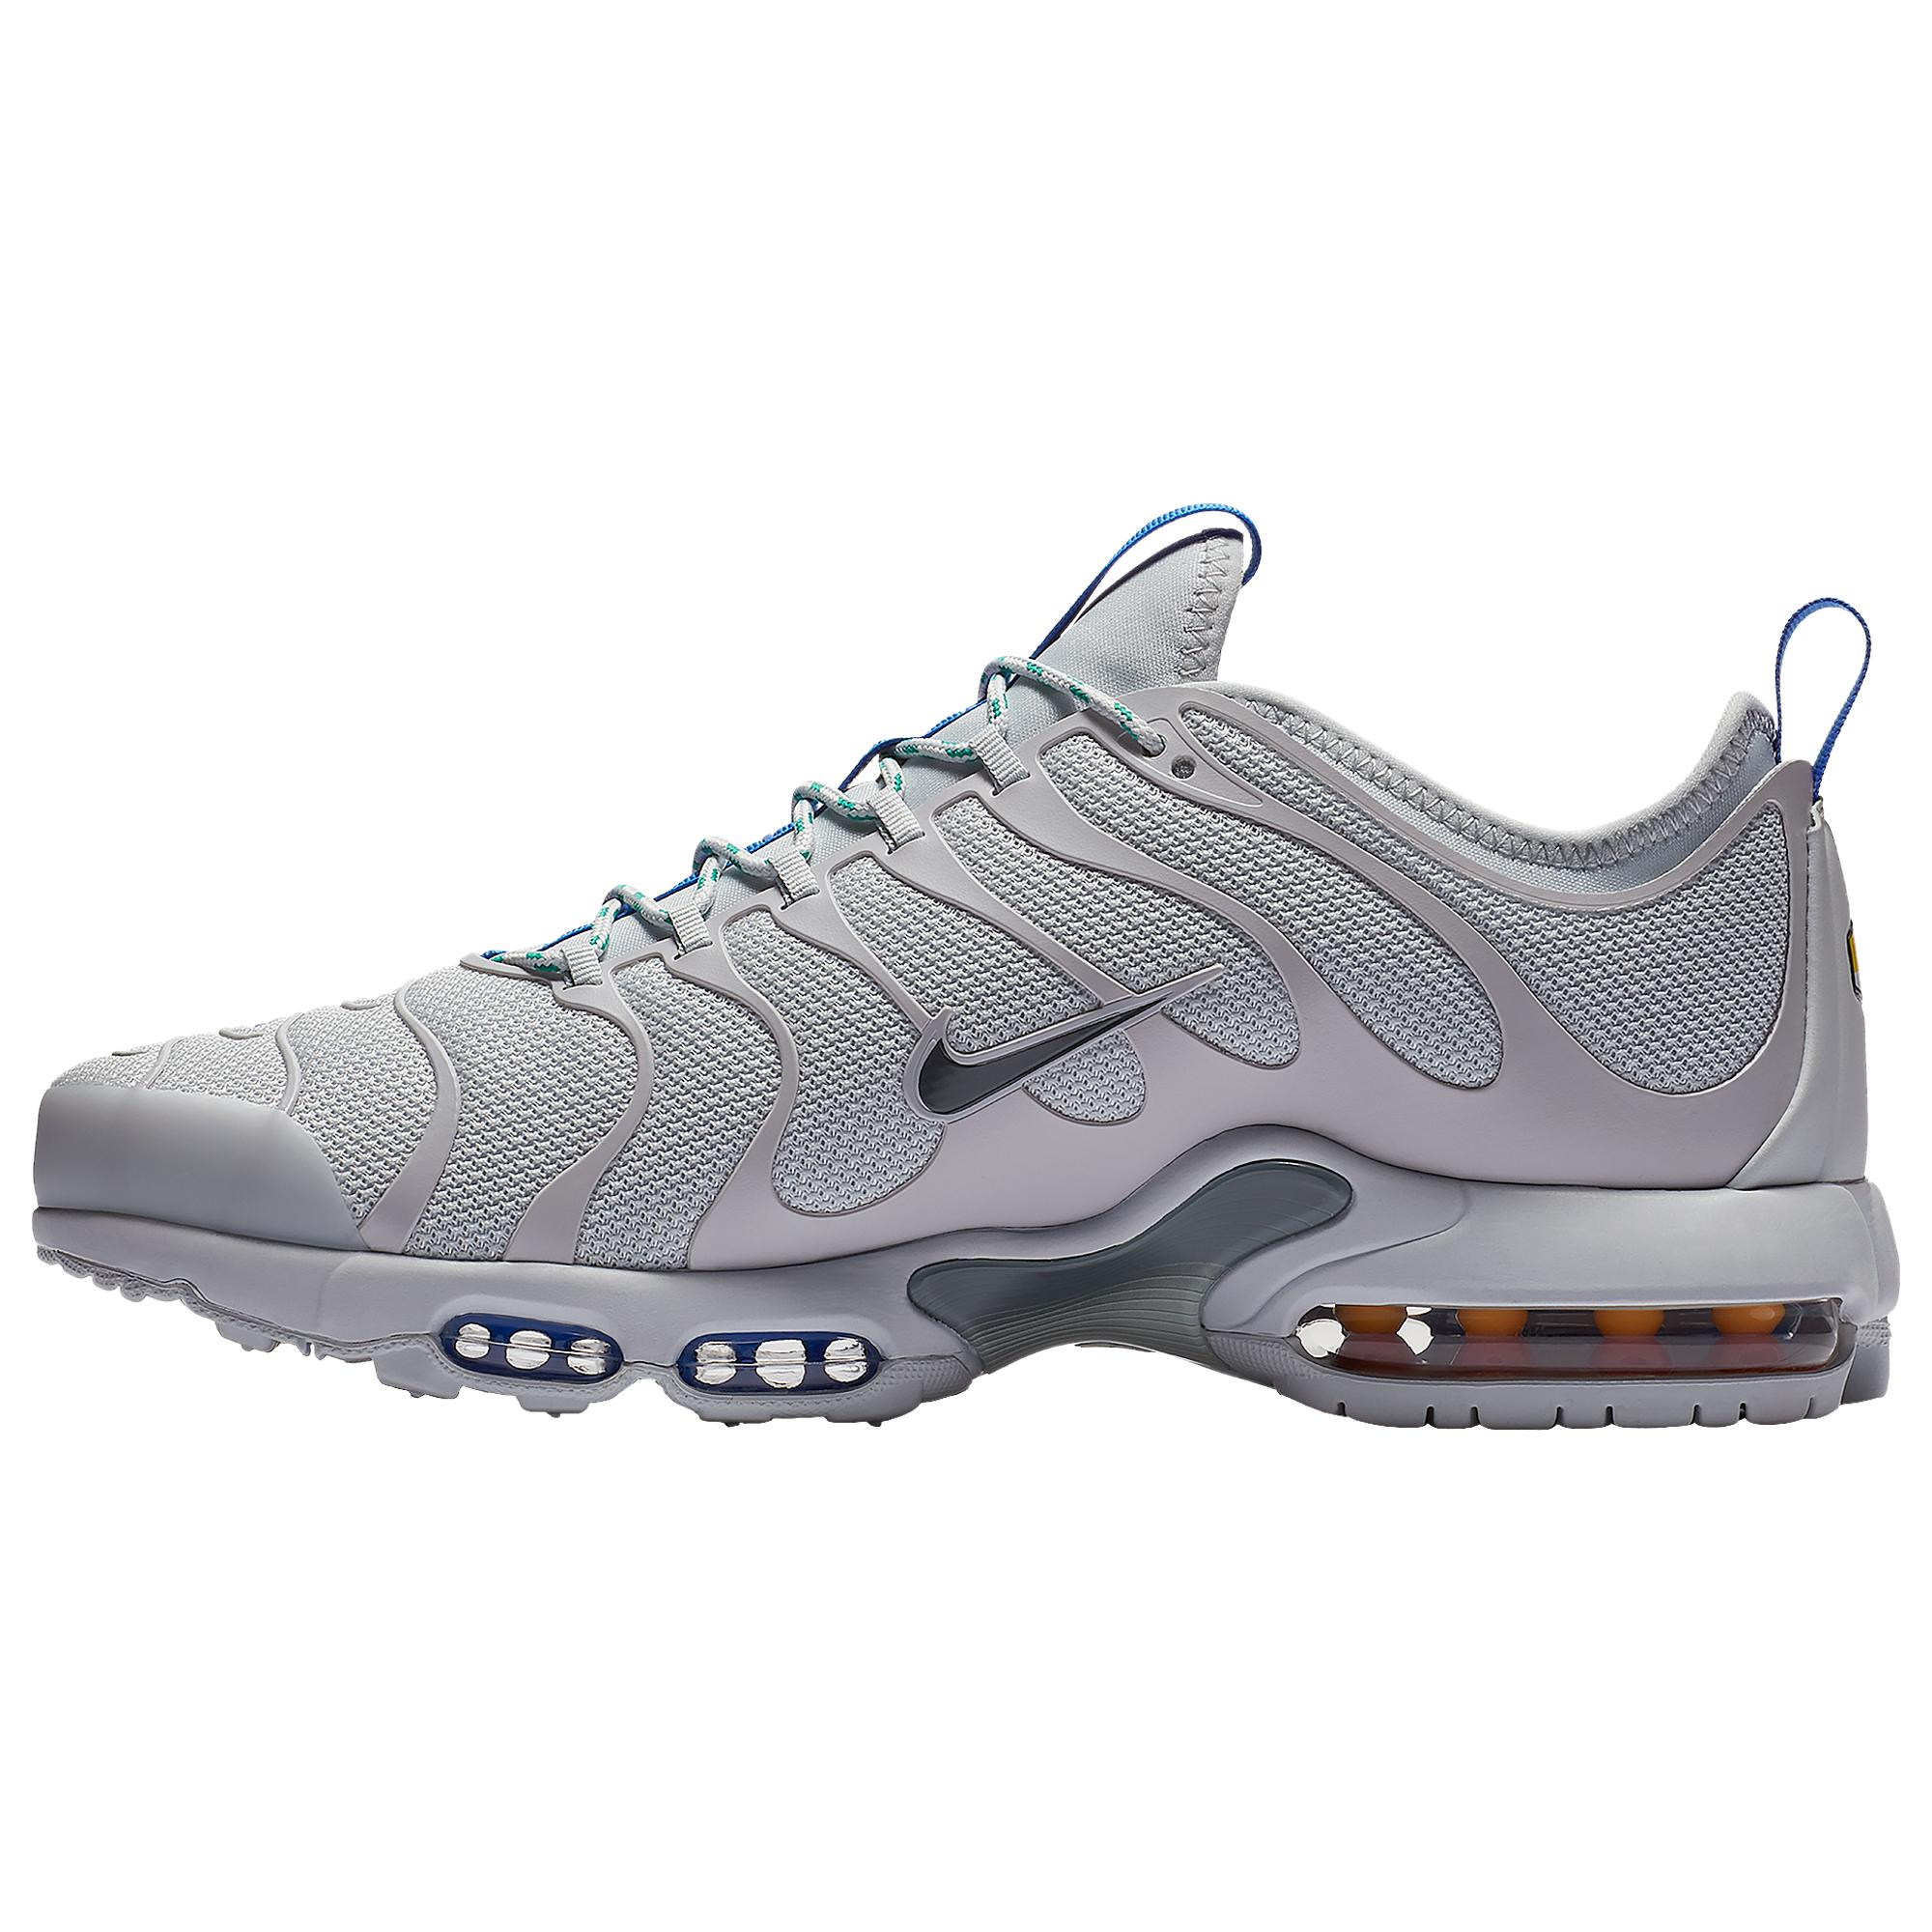 promo code 1c9cd a9954 Nike Air Max Plus Tn Ultra in Gray for Men - Lyst